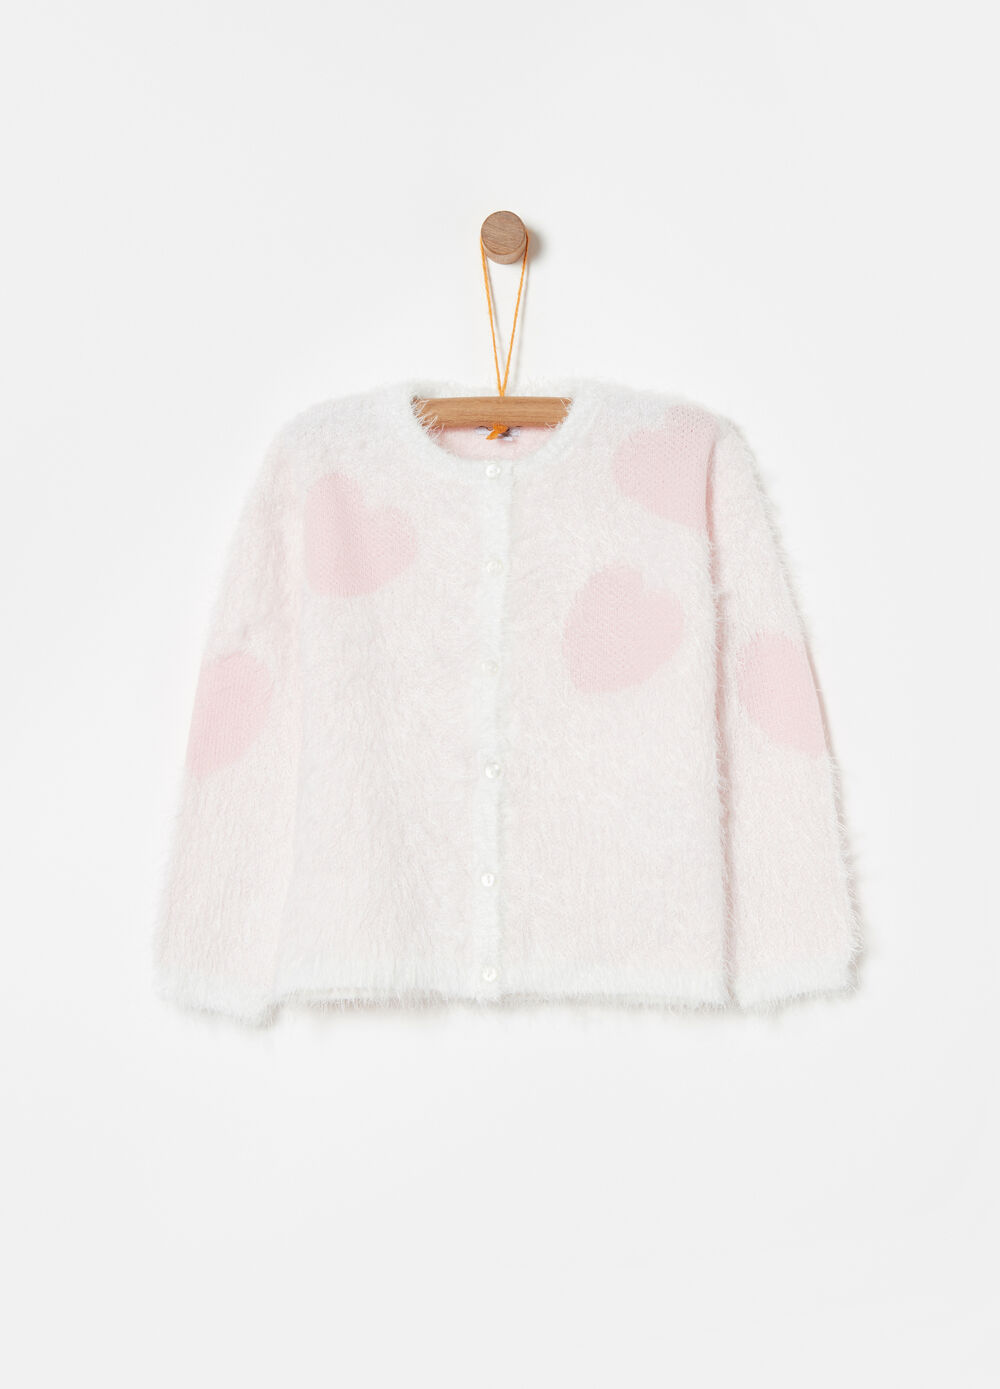 Knitted cardigan with hearts jacquard